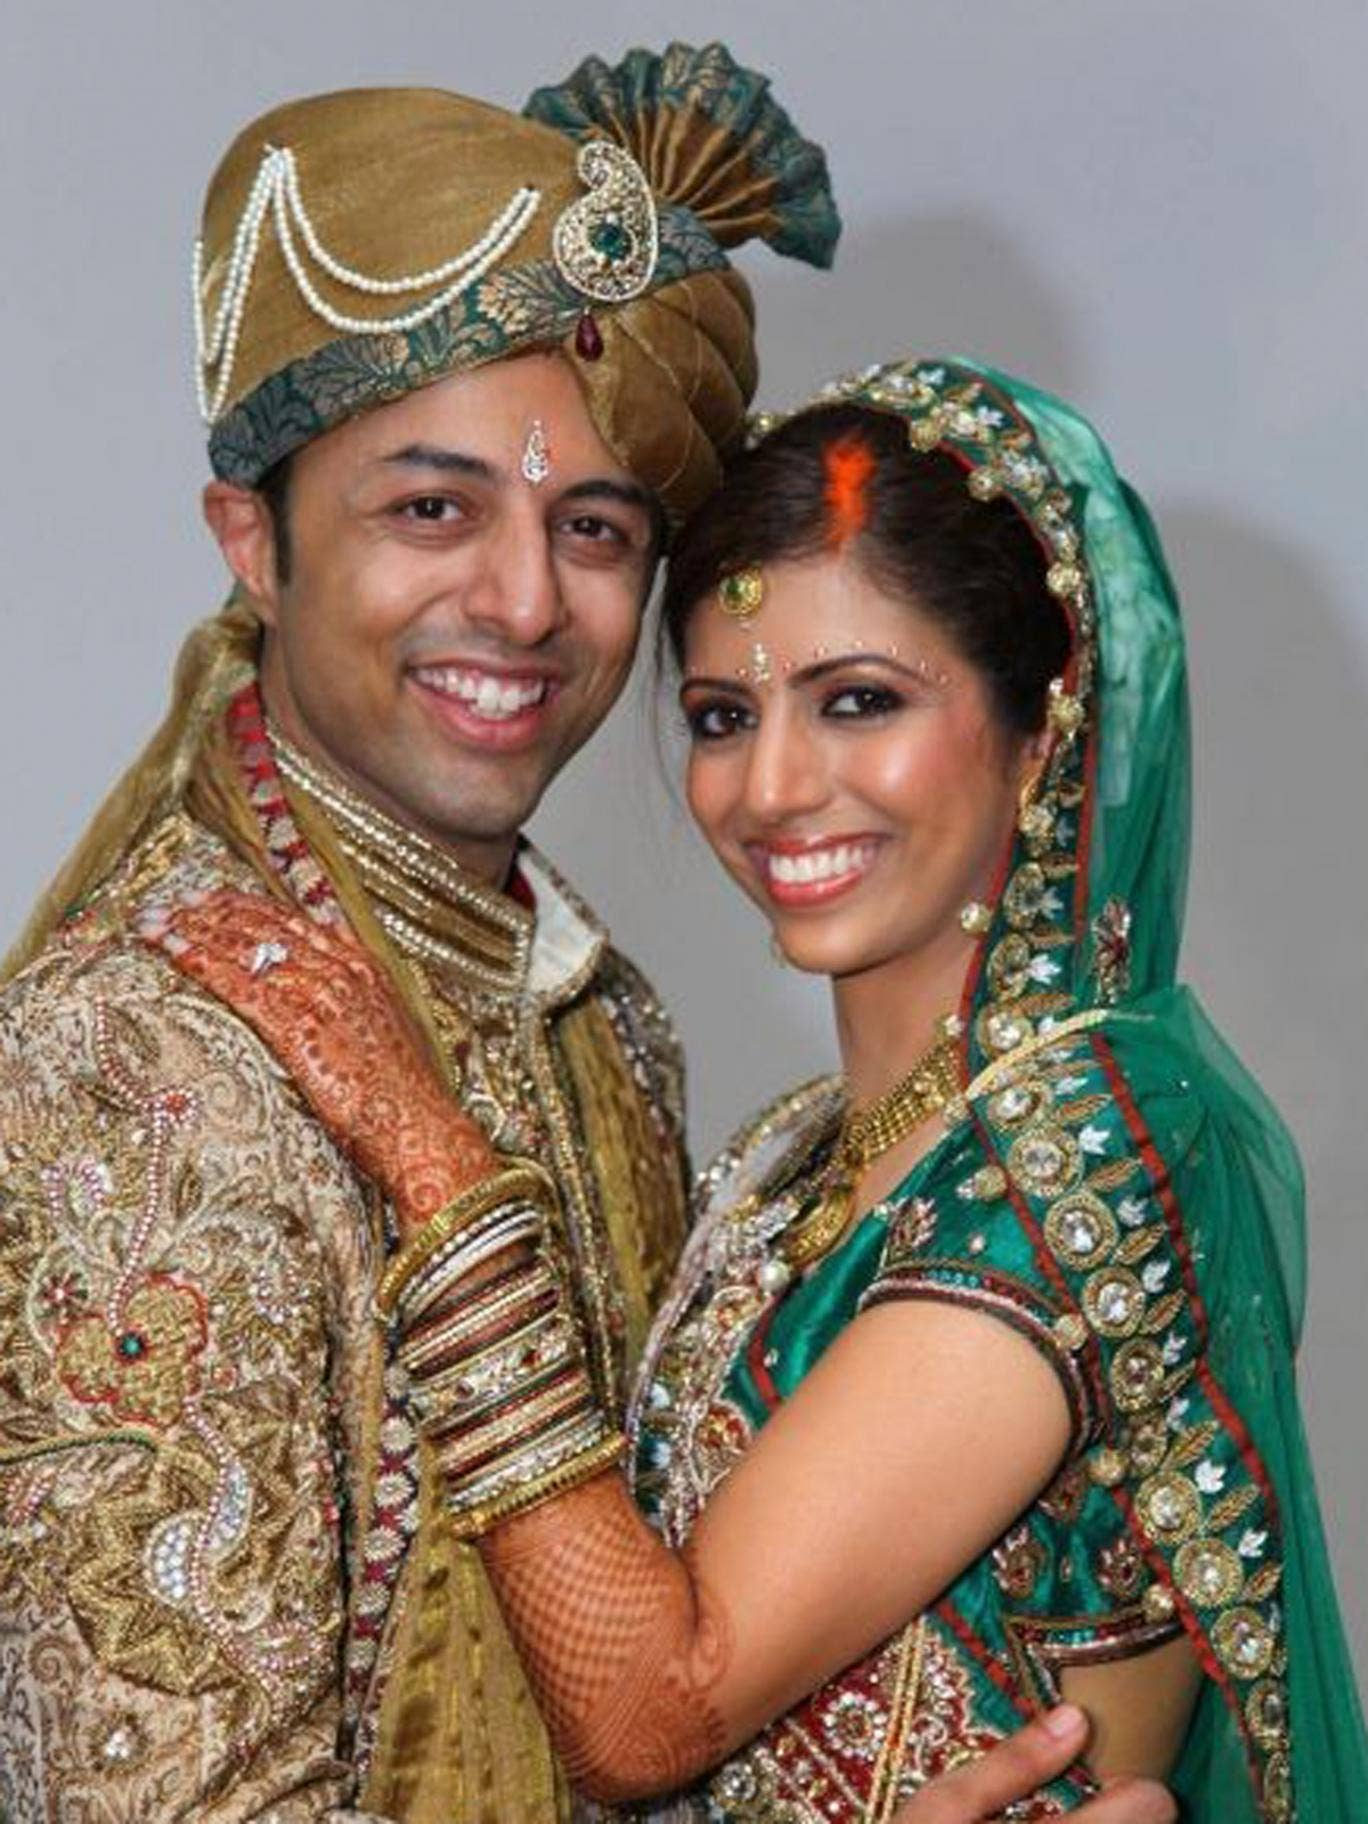 Shrien Dewani is accused of killing his bride Anni on their honeymoon in South Africa